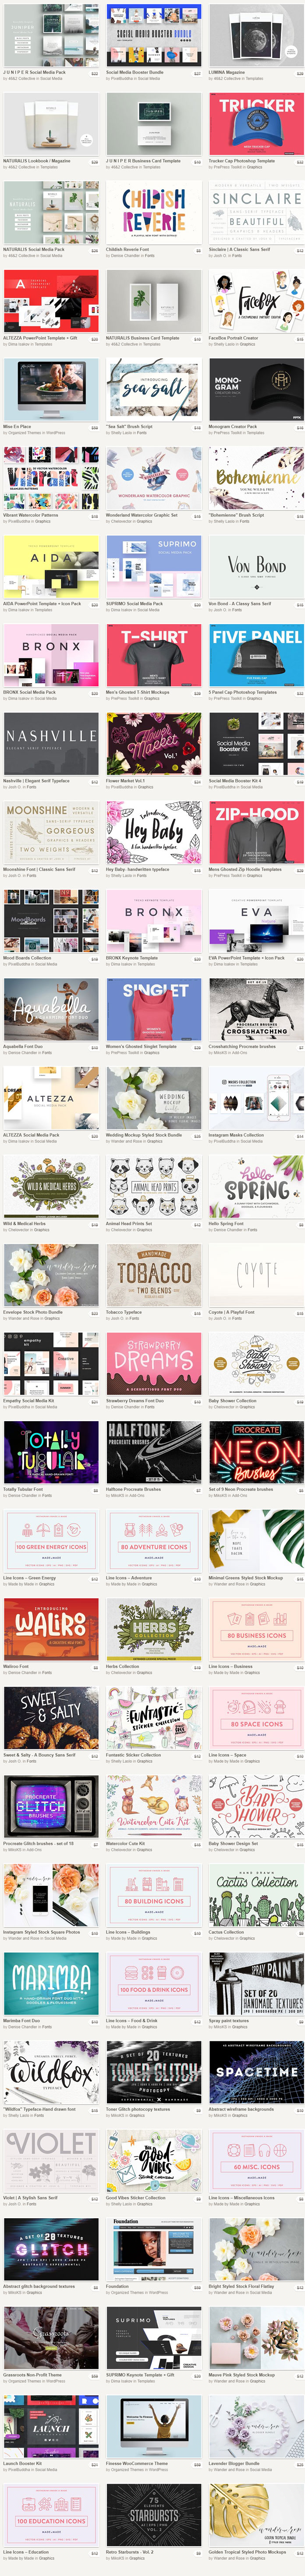 Big Summer Sale: graphic products and fonts in the August bundle from Creative Market!